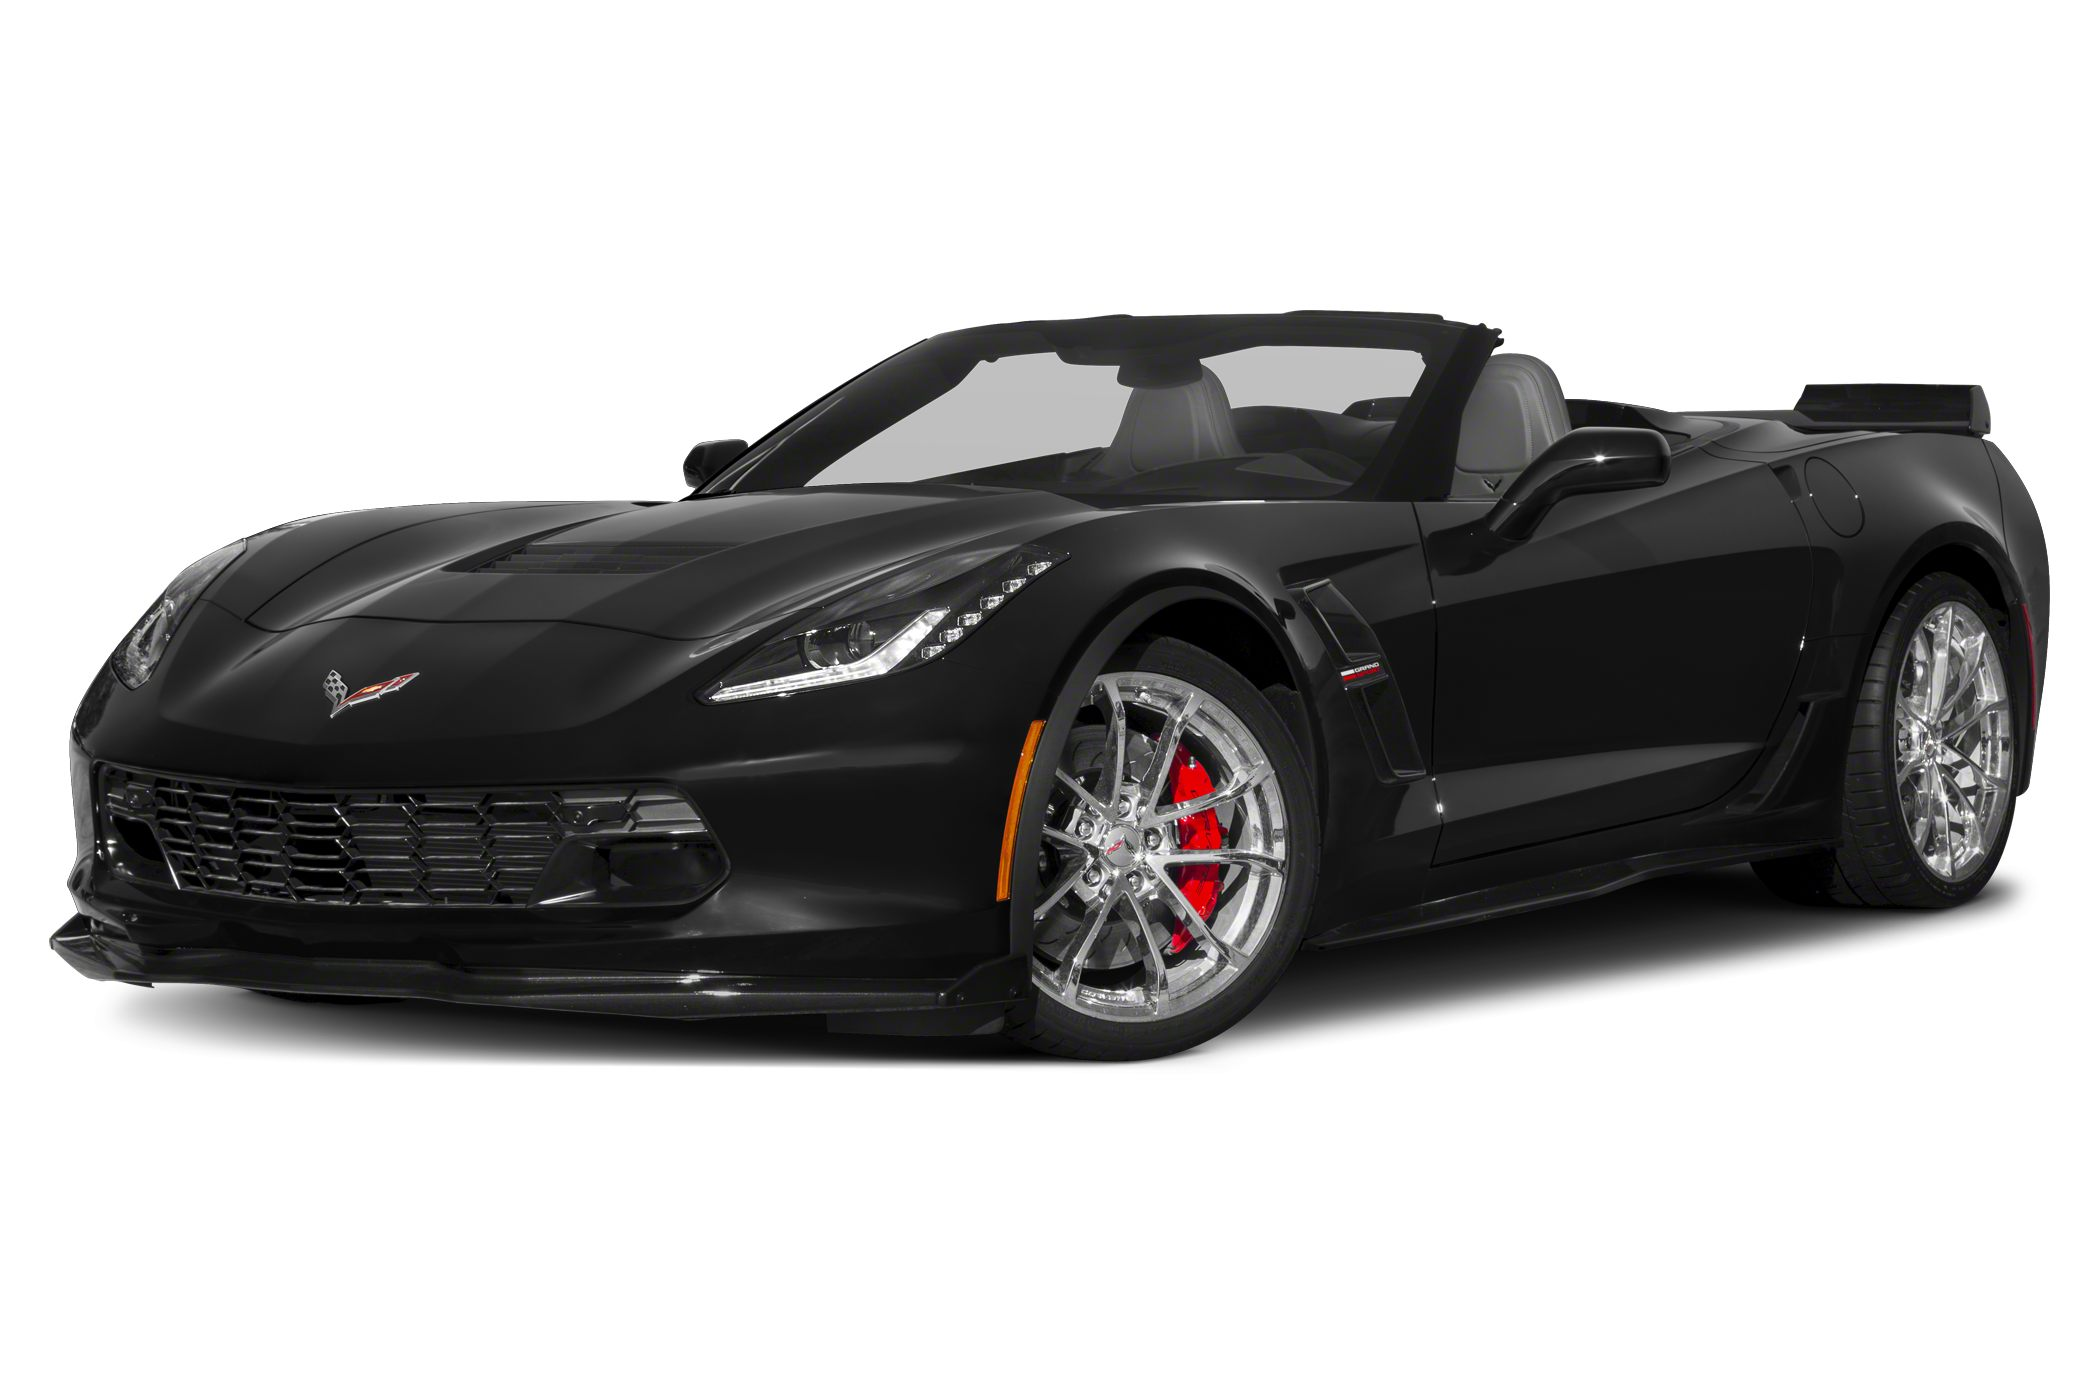 2019 Chevrolet Corvette Grand Sport 2dr Convertible Pricing And Options